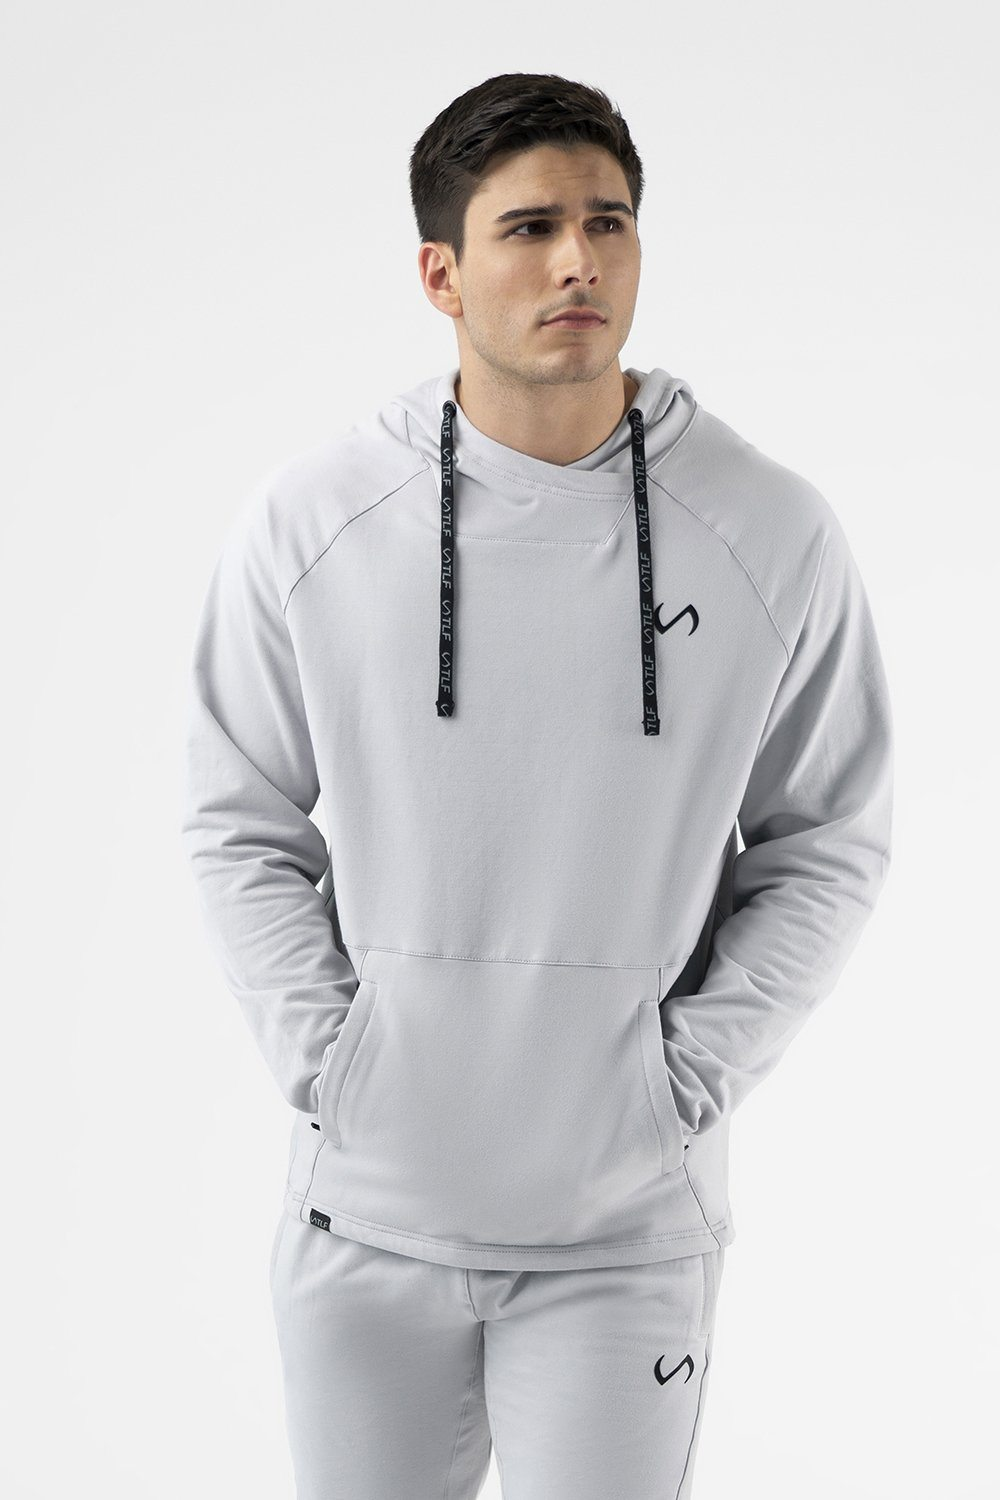 Camo French Terry Workout Hoodie - Silver